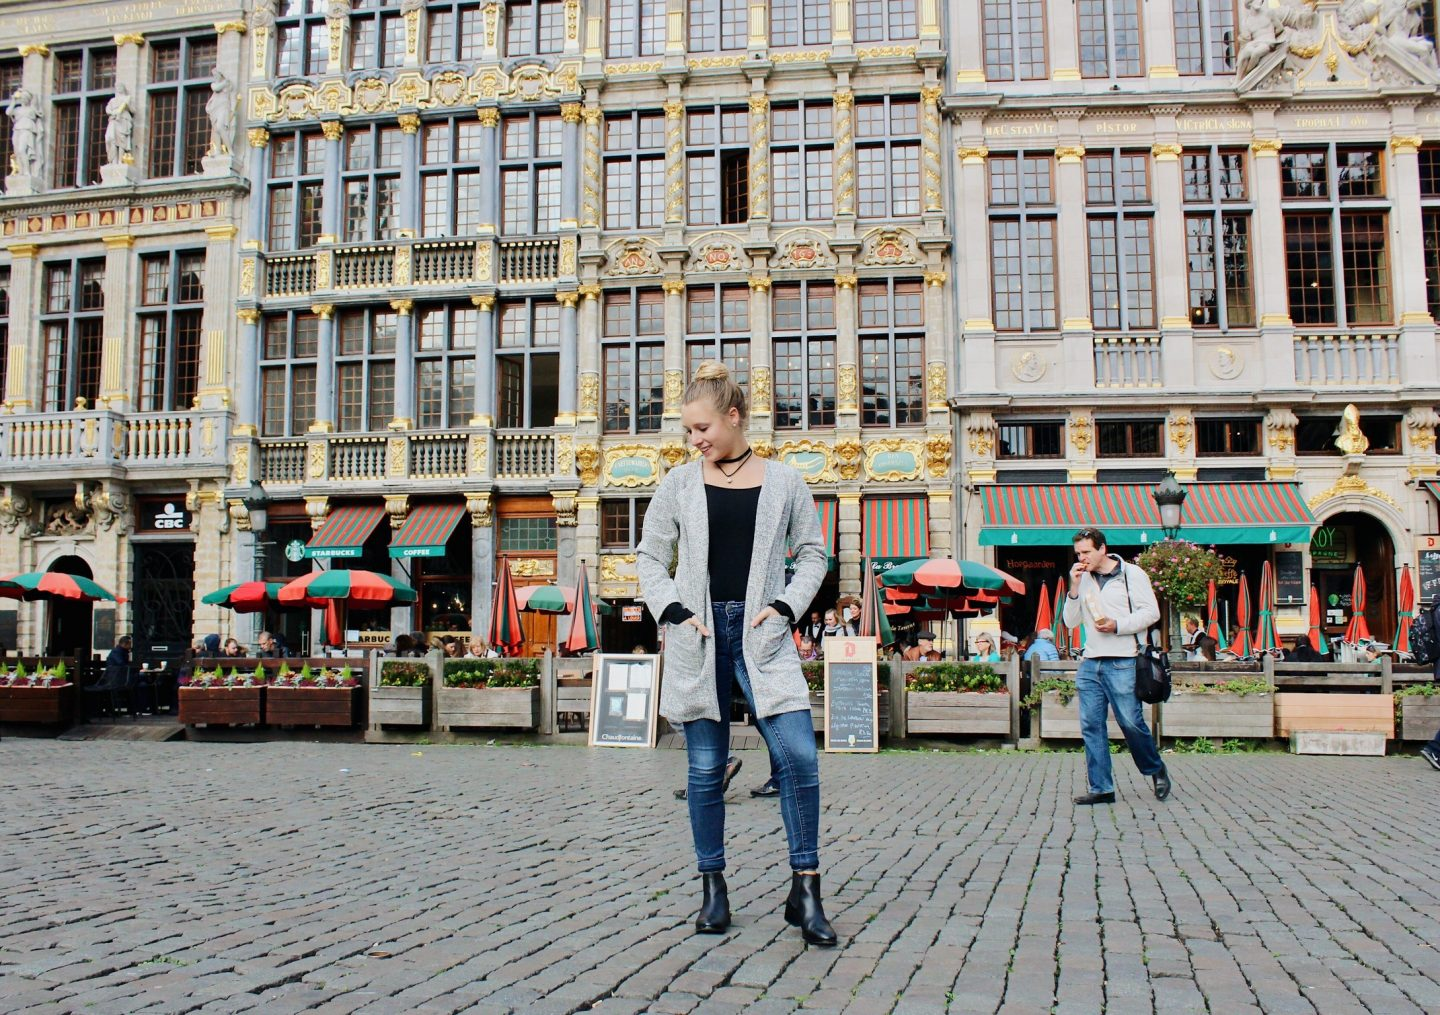 Posing in Brussels' main square